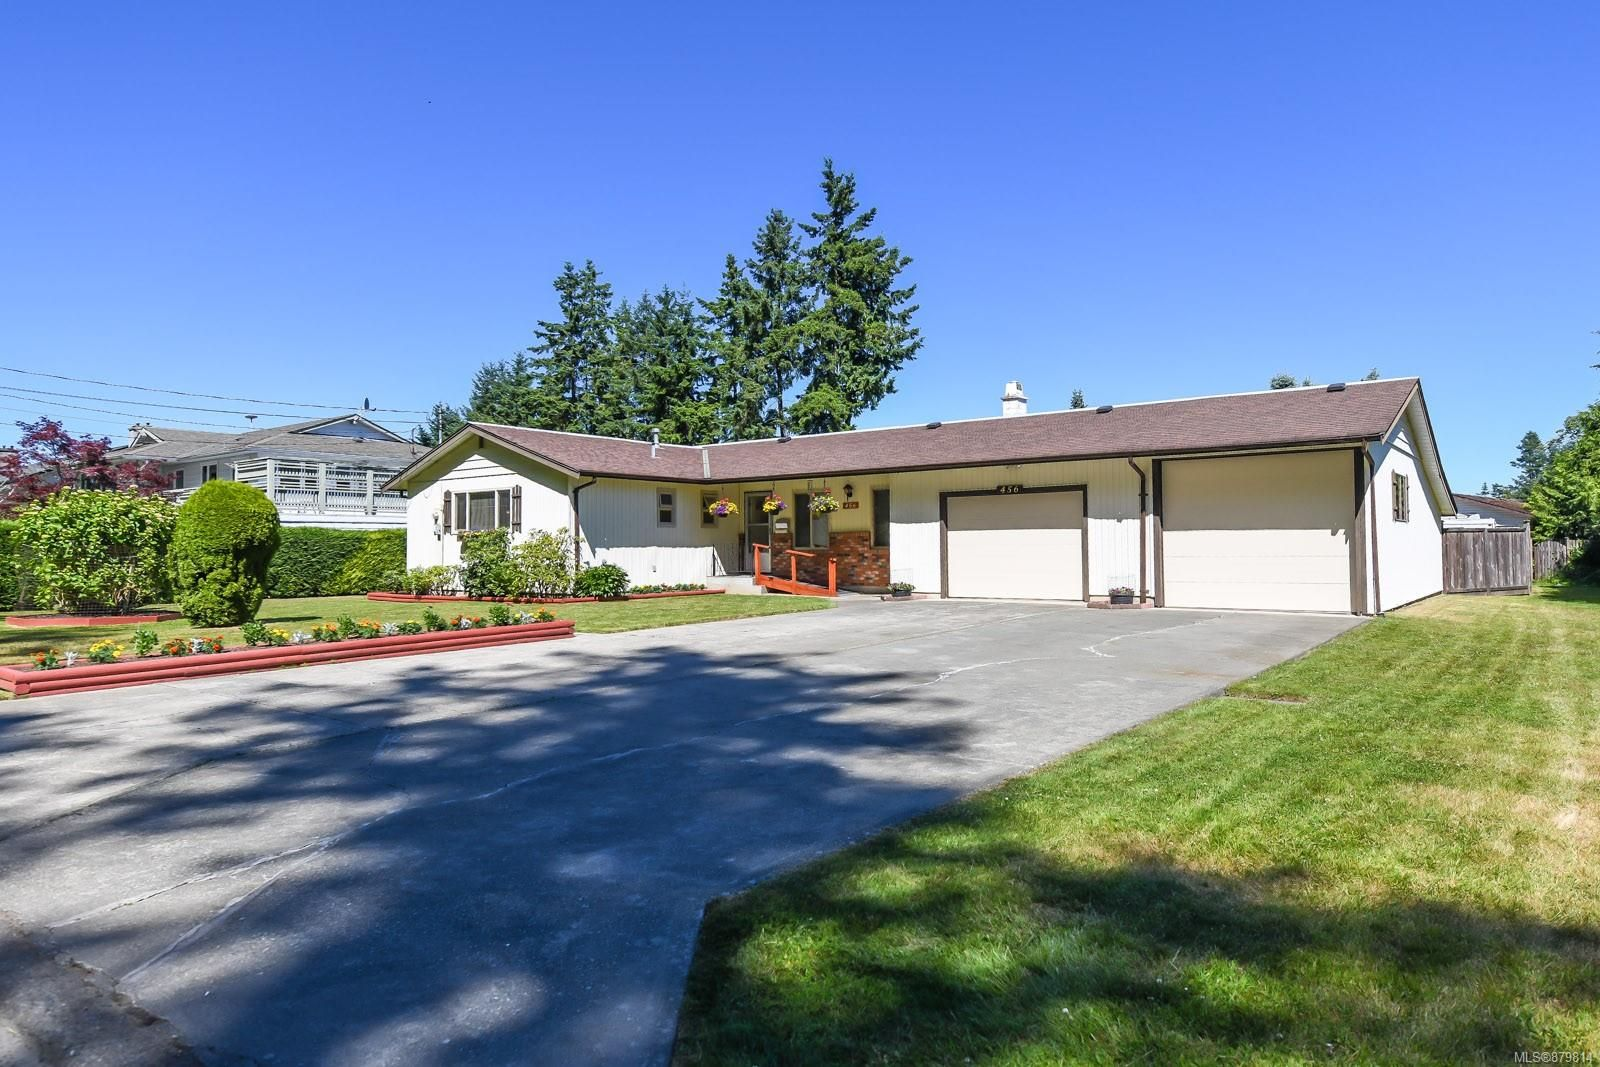 Main Photo: 456 Condor St in : CV Comox (Town of) House for sale (Comox Valley)  : MLS®# 879814